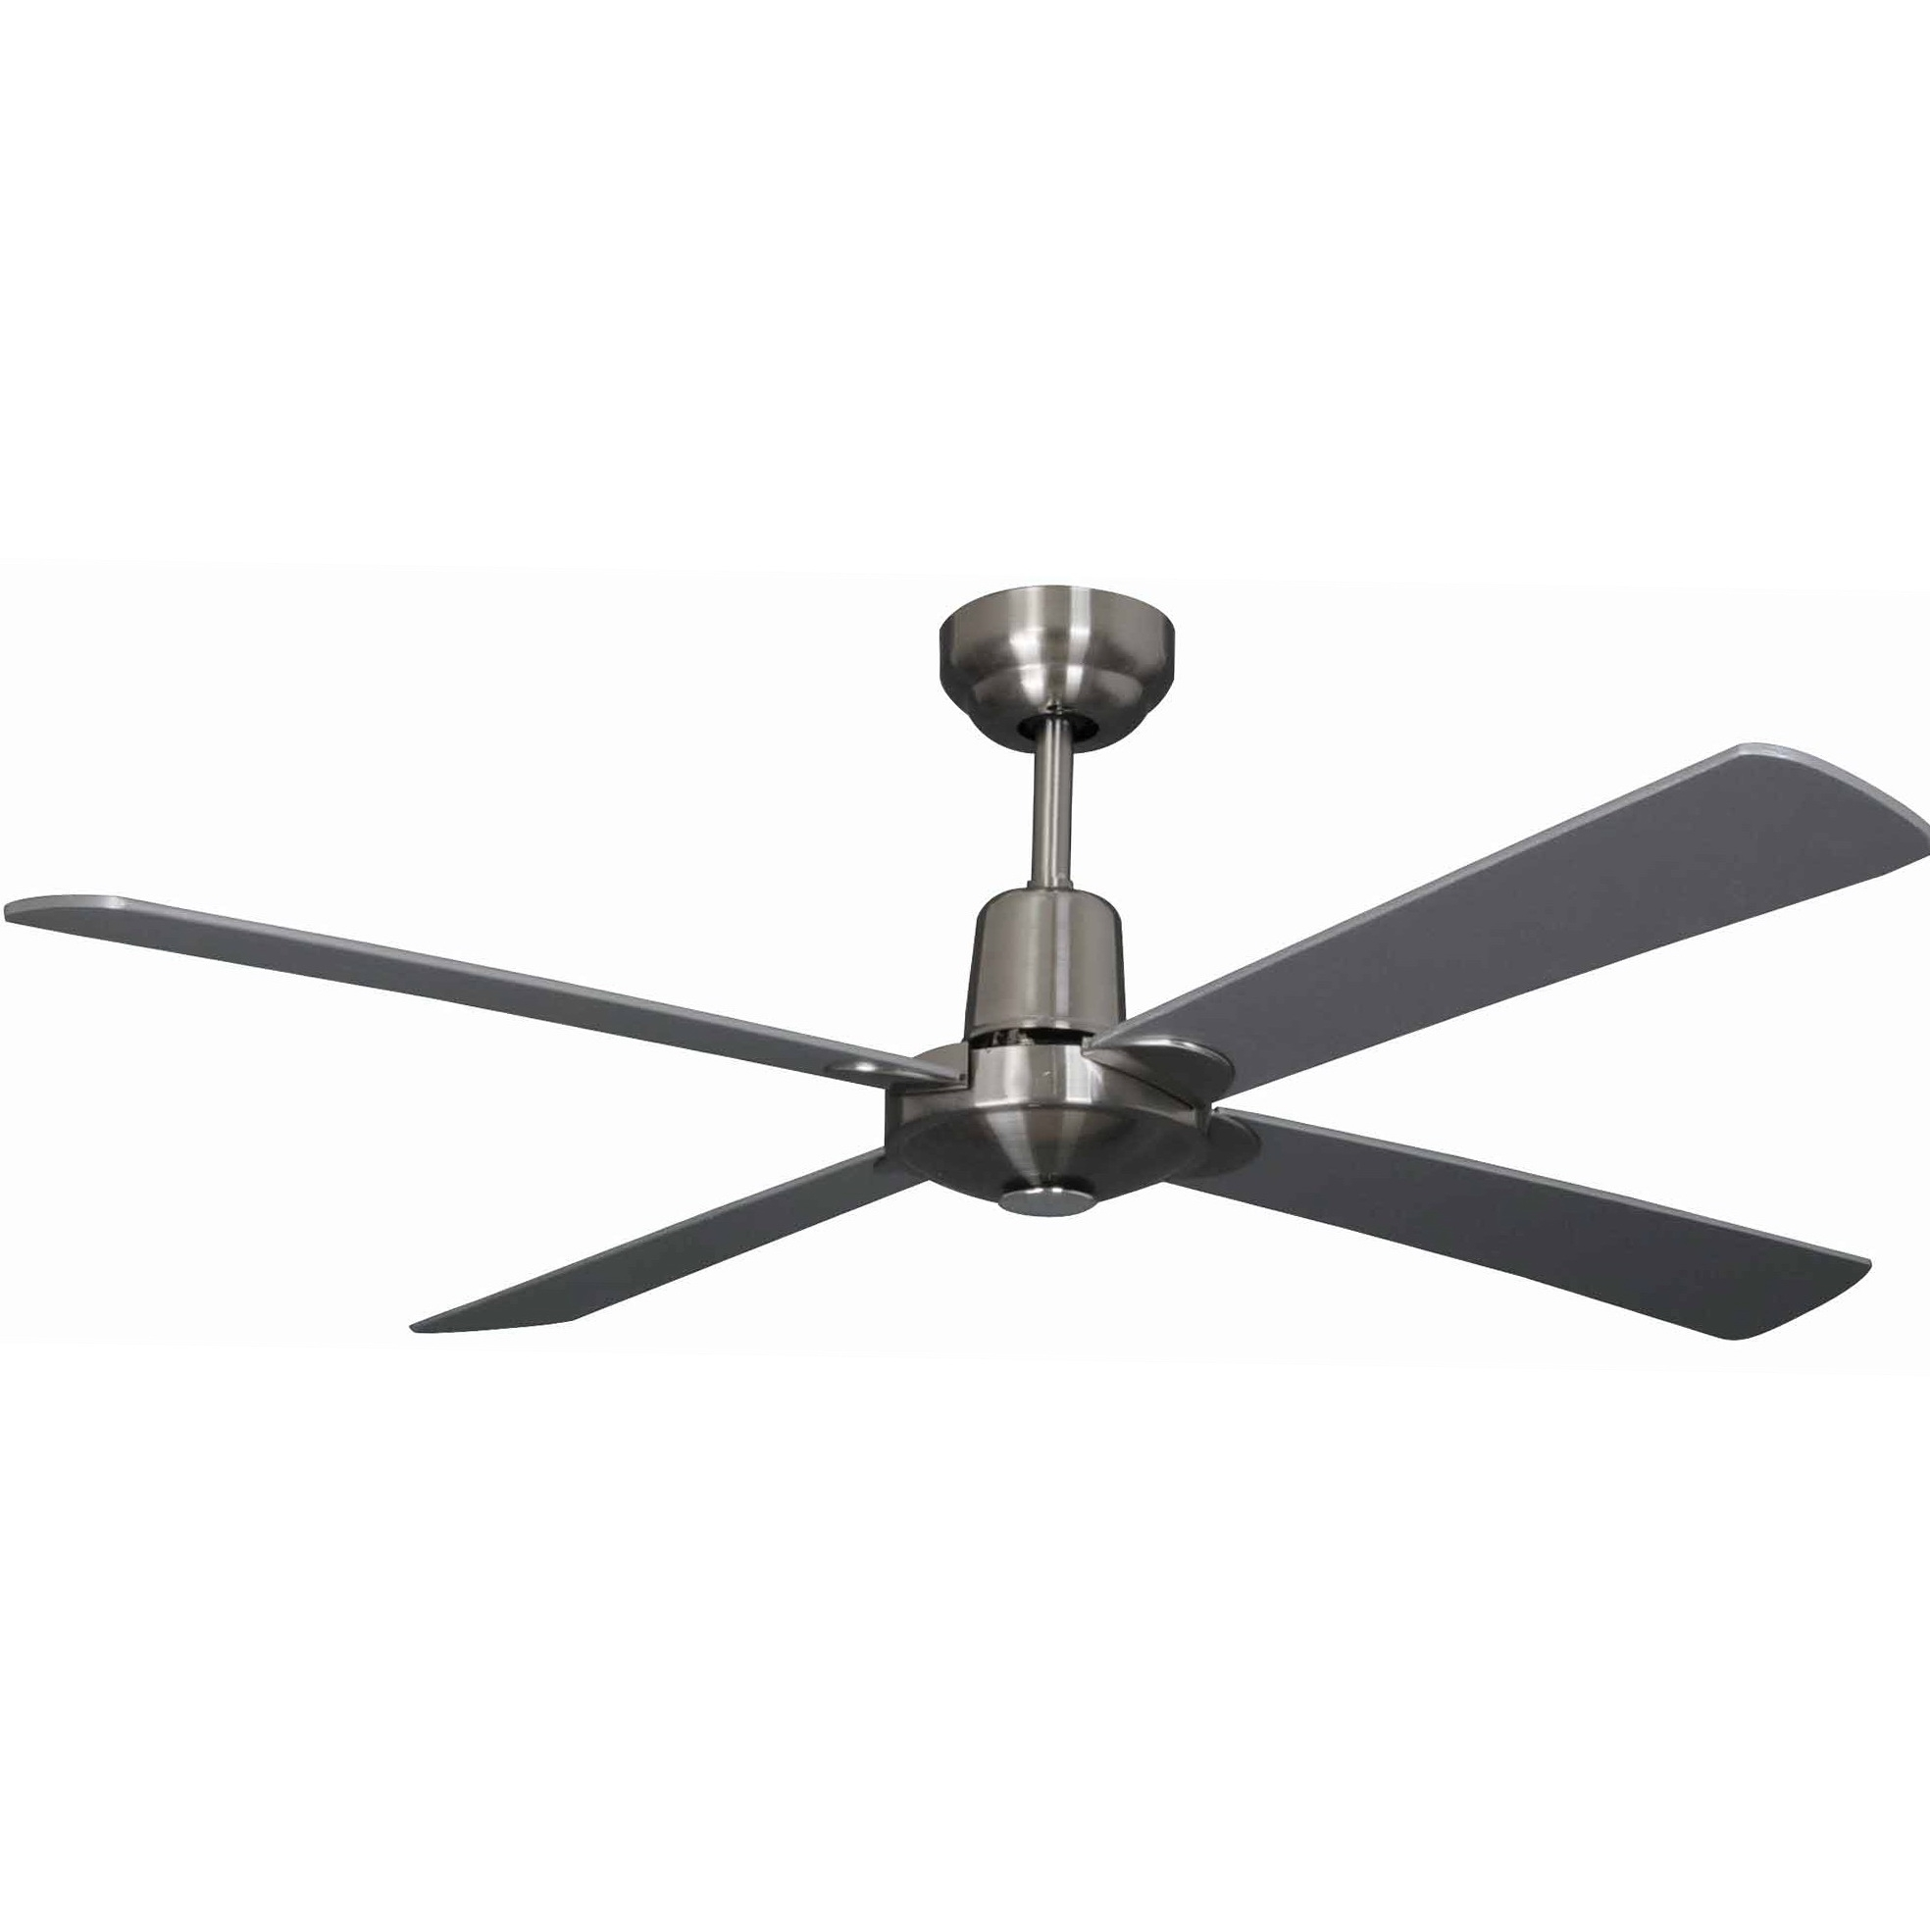 Most Recent Ceiling Fan With Light Kit And Remote Control Hugger Outdoor Fans Intended For Outdoor Ceiling Fan Lights With Remote Control (View 11 of 20)